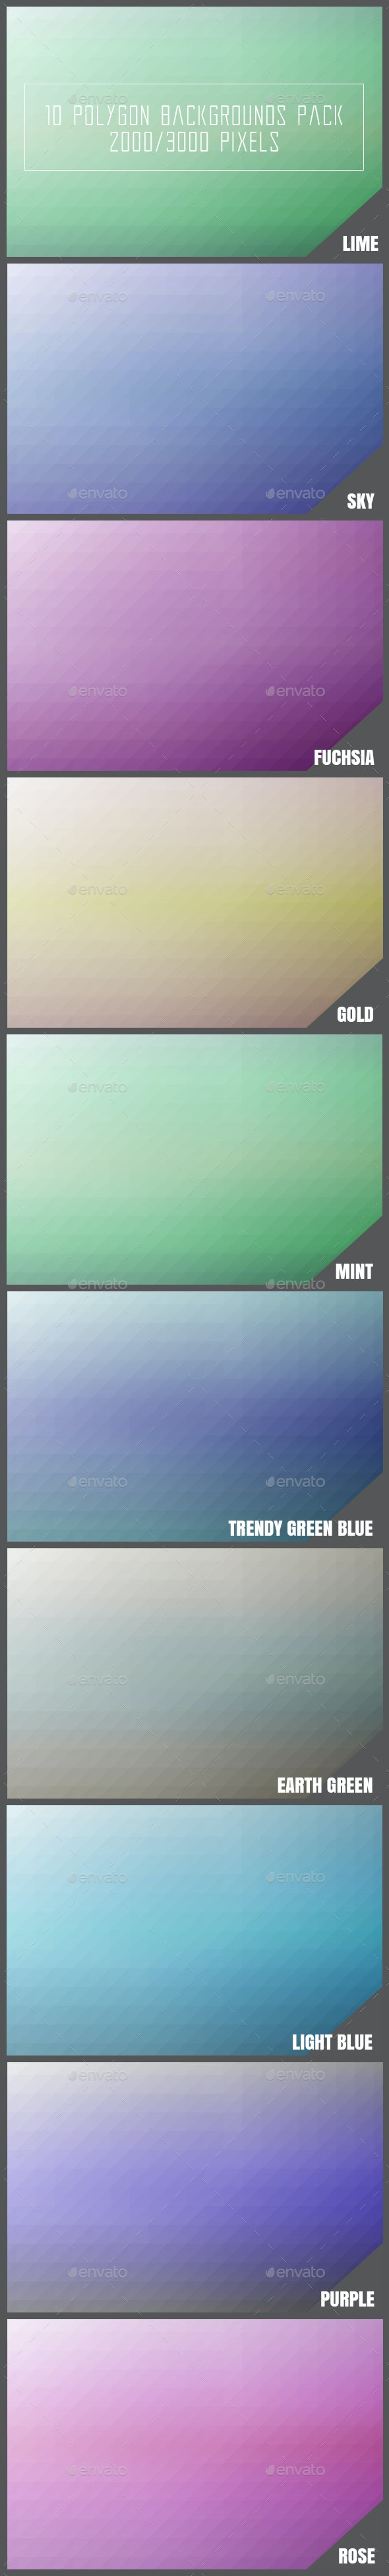 10 Polygon Backgrounds Pack - Backgrounds Graphics